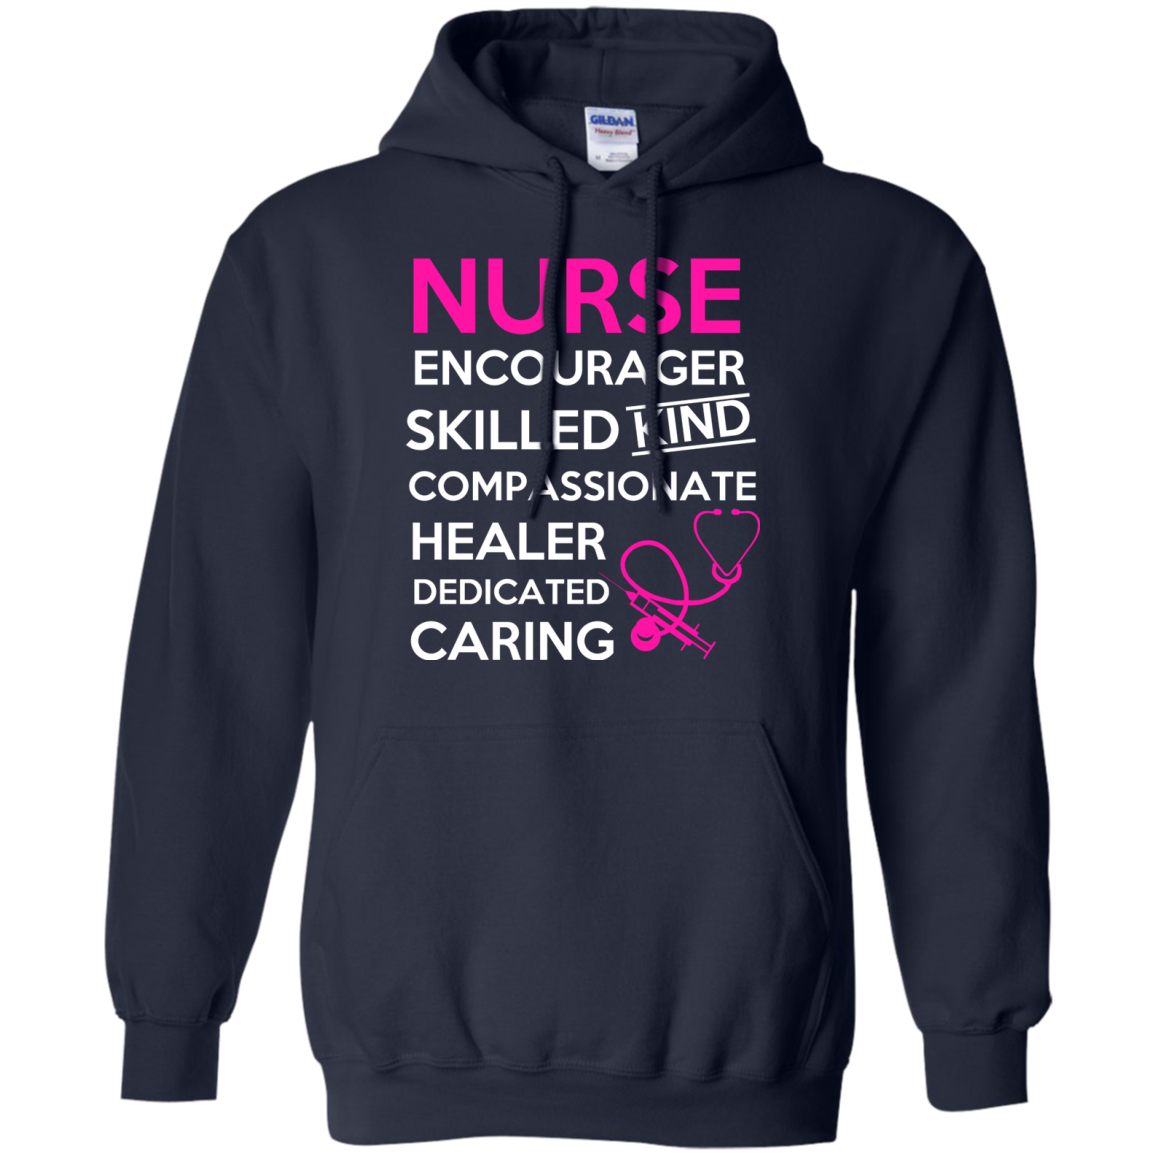 NURSE Encourager Skilled KIND Compassionate HEALER Dedicated CARING